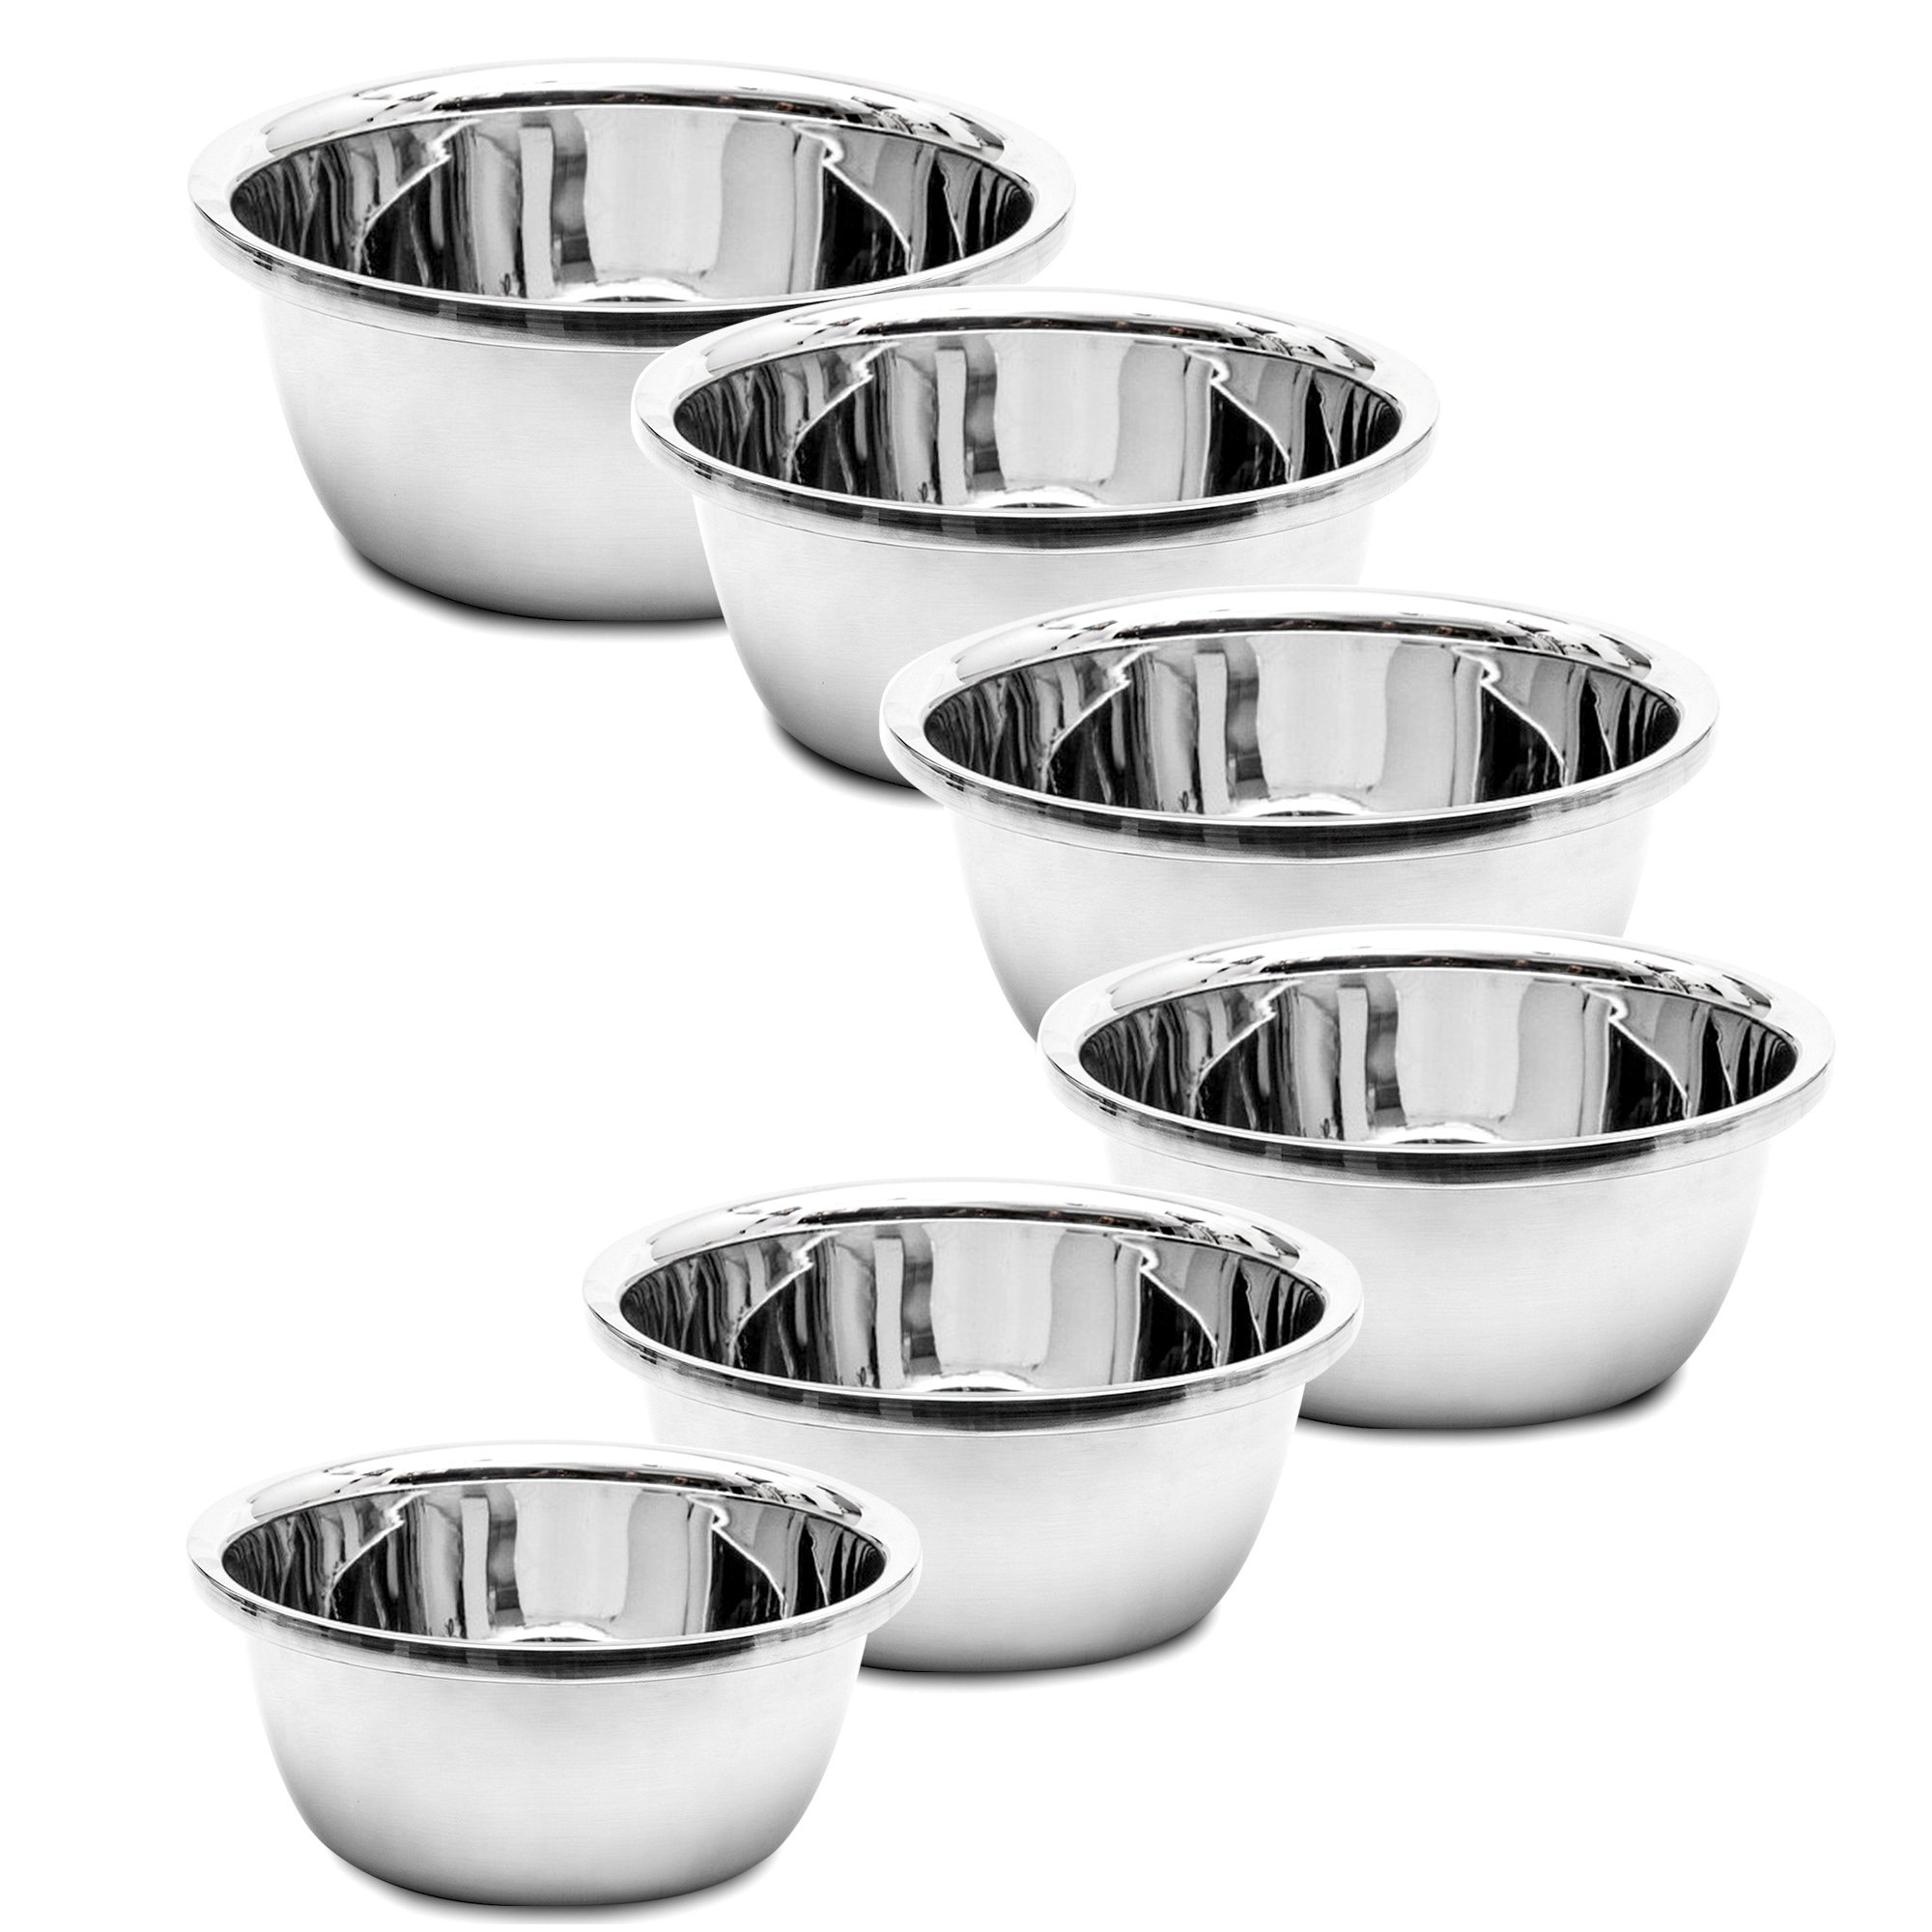 6 Piece Set Stainless Steel Flat Base Mixing Bowls - Hand of the Chef (6Pcs 1.16-1.7 - 2.22-2.9 - 3.7-4.2) Quart Polished Mirror Finish Easy Grip for Whisking Mixing Beating Nesting Stackable by Hand Of The Chef